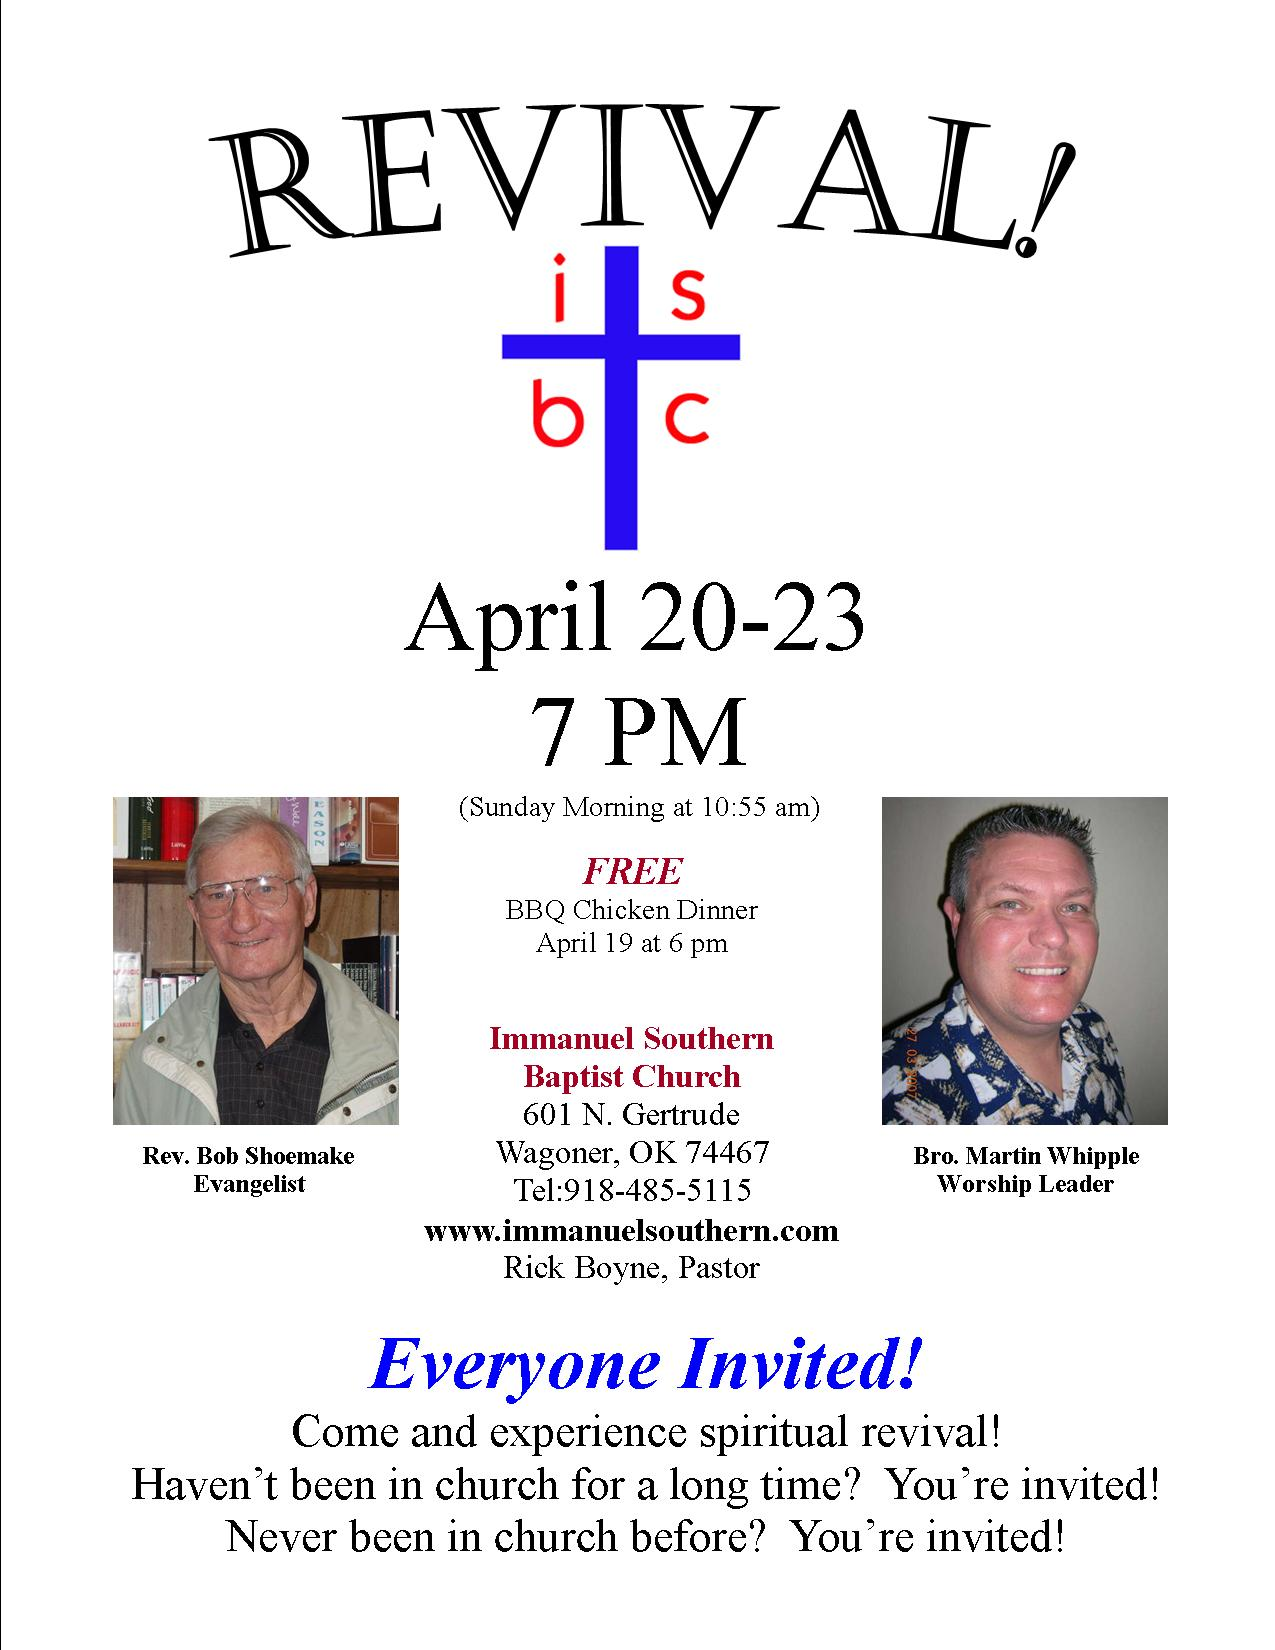 Youth revival flyer ideas party invitations ideas for Free church revival flyer template